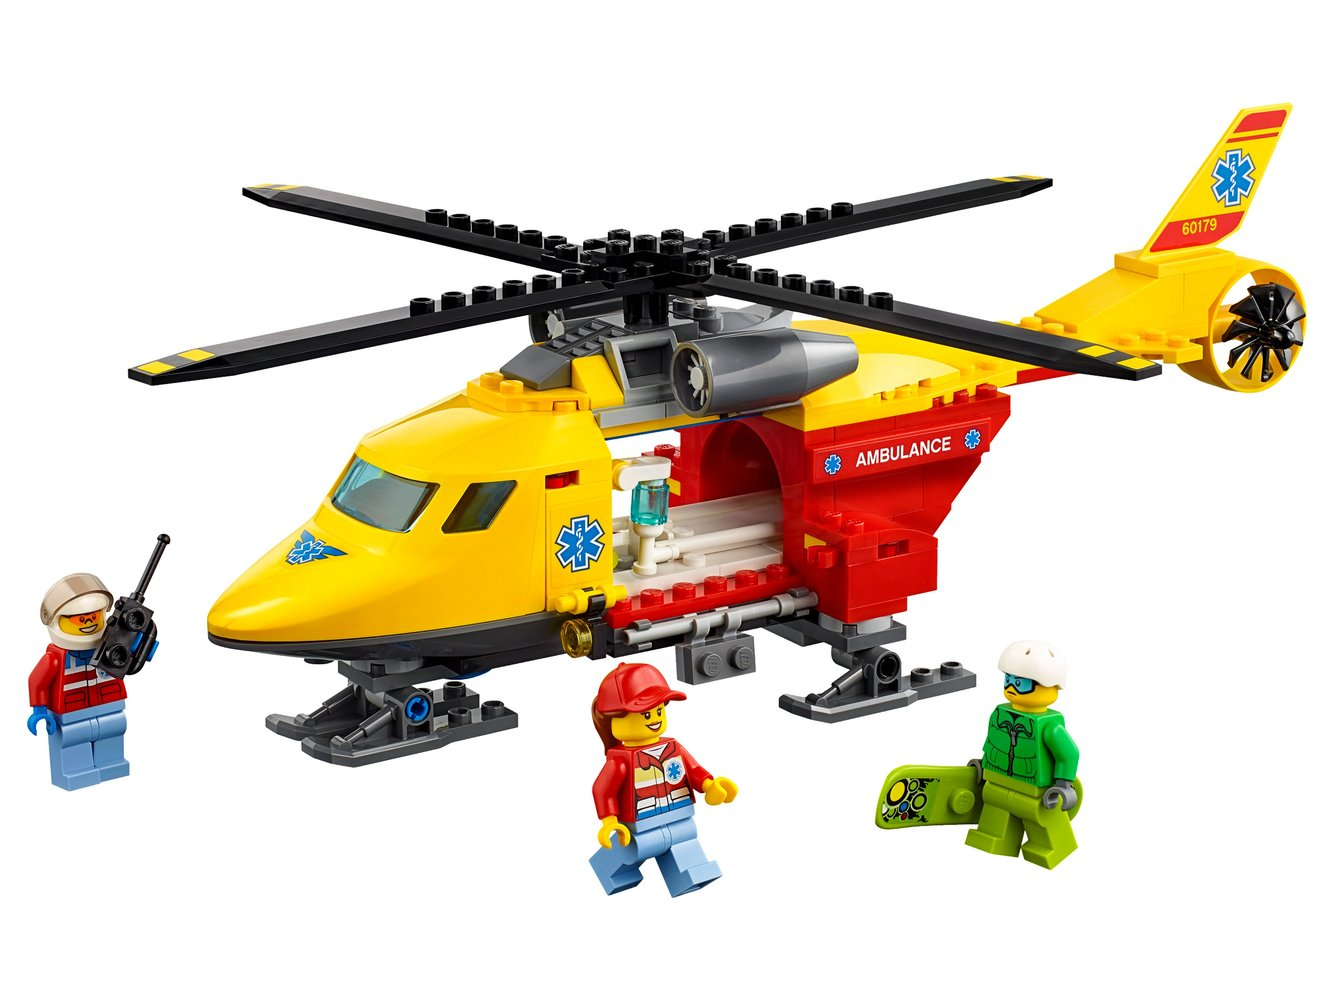 Ambulance Helicopter